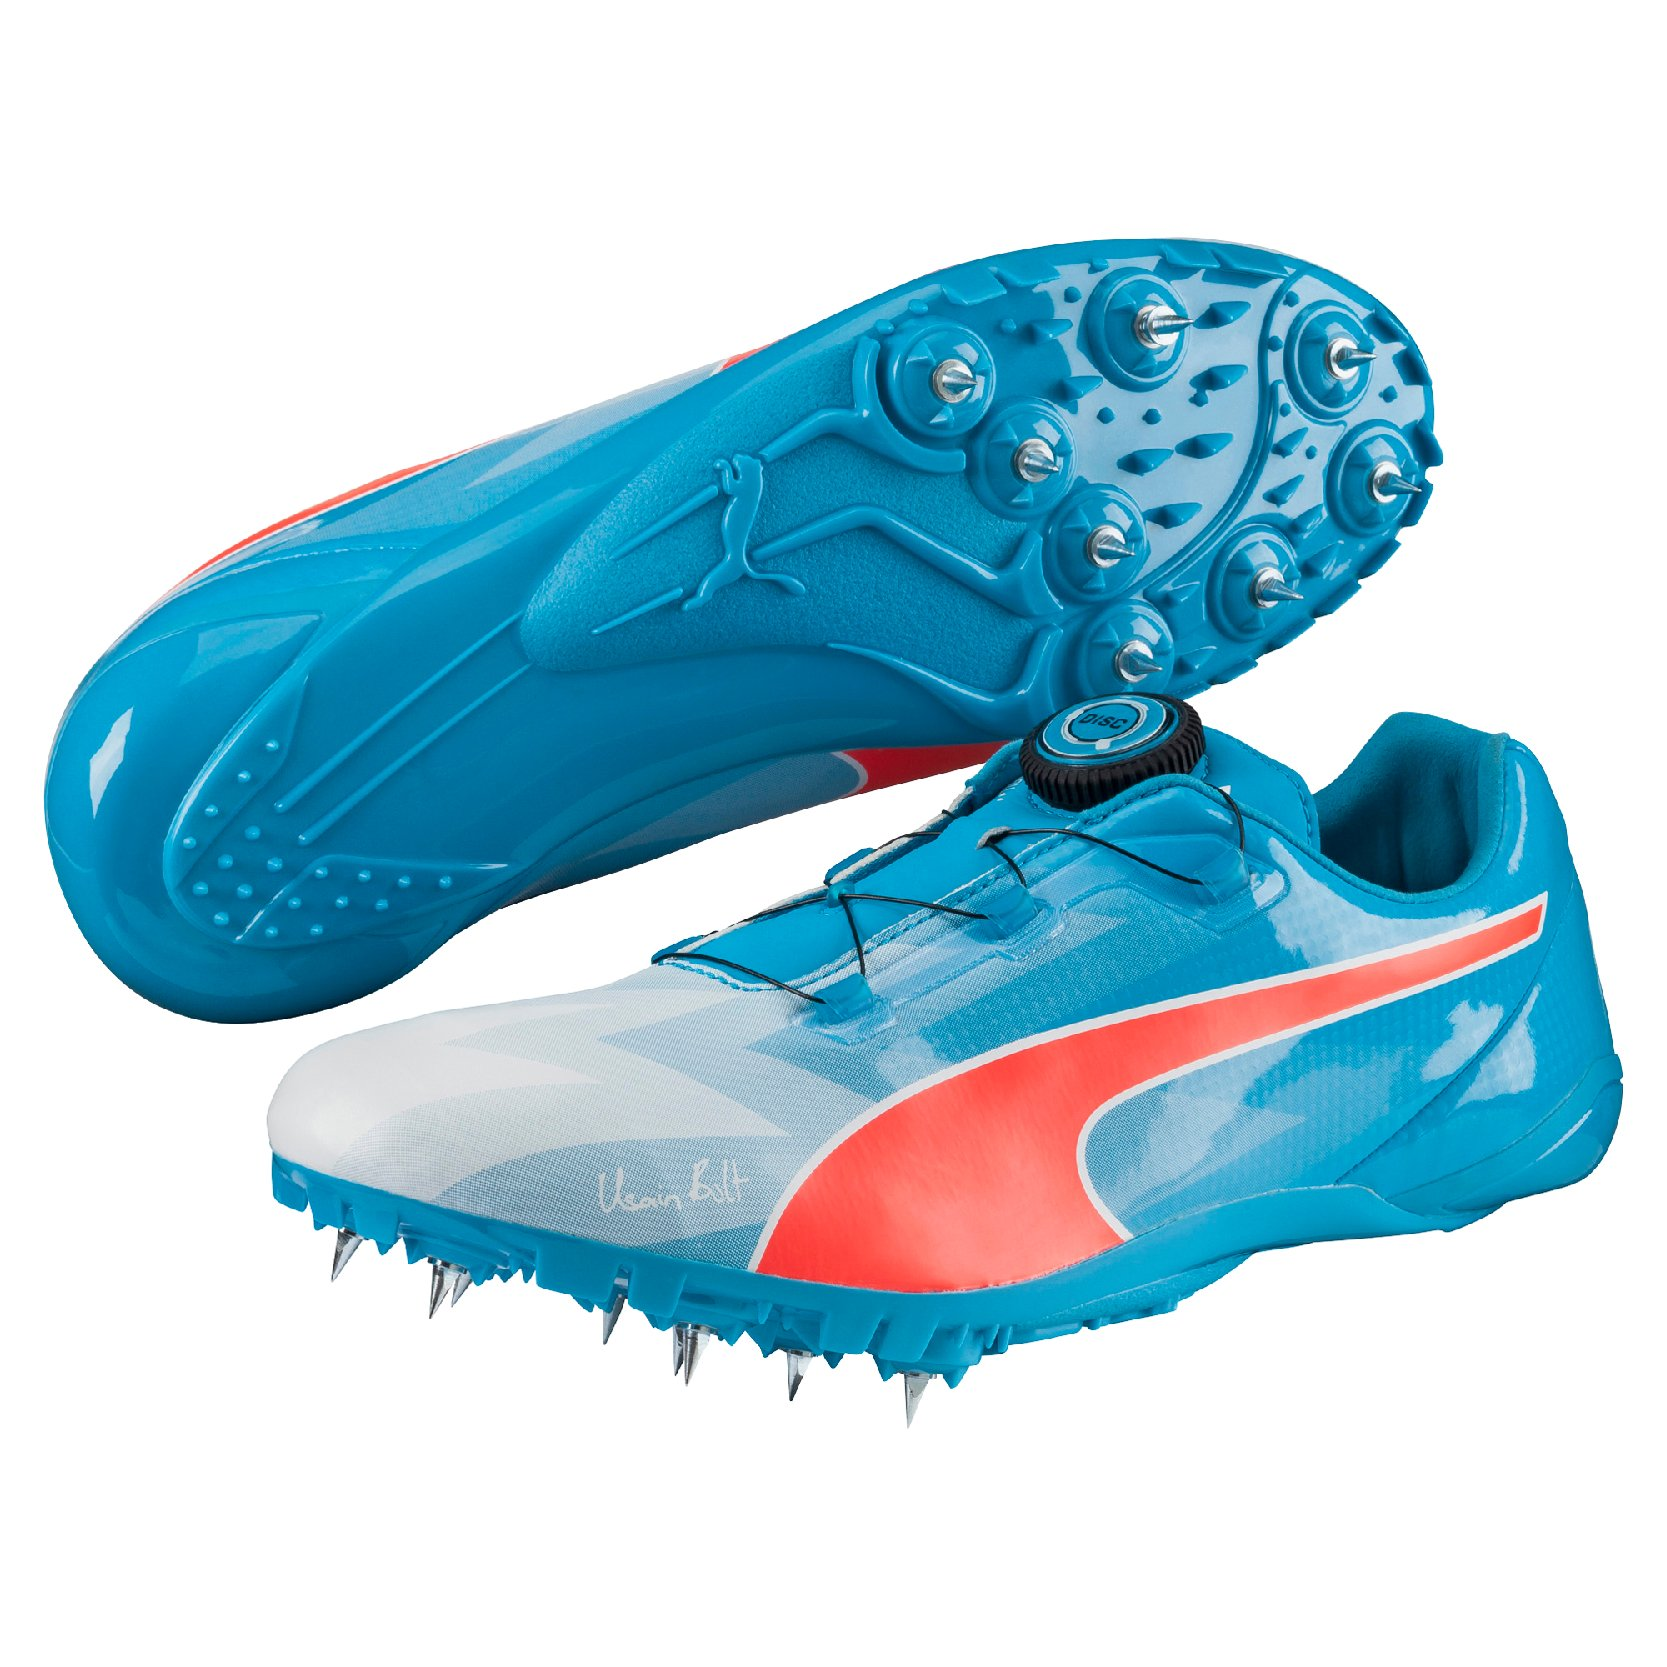 Tretry Puma Bolt EvoSPEED DISC atomic blue-red blast